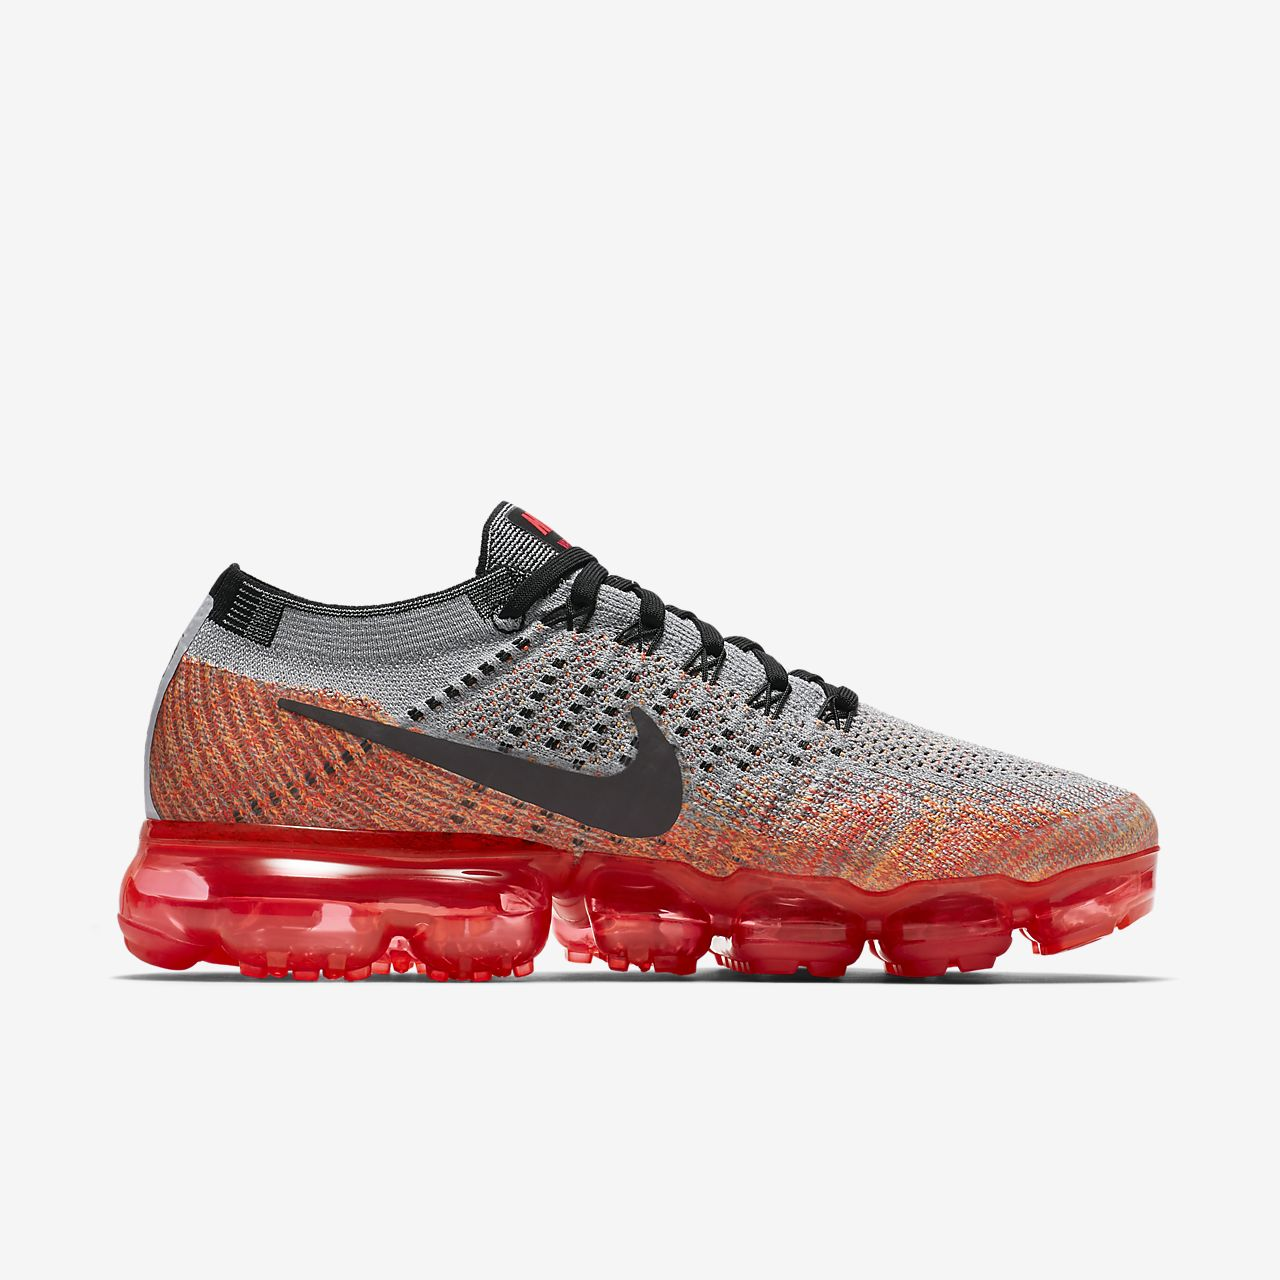 Nike VaporMax Flyknit 'Be True'